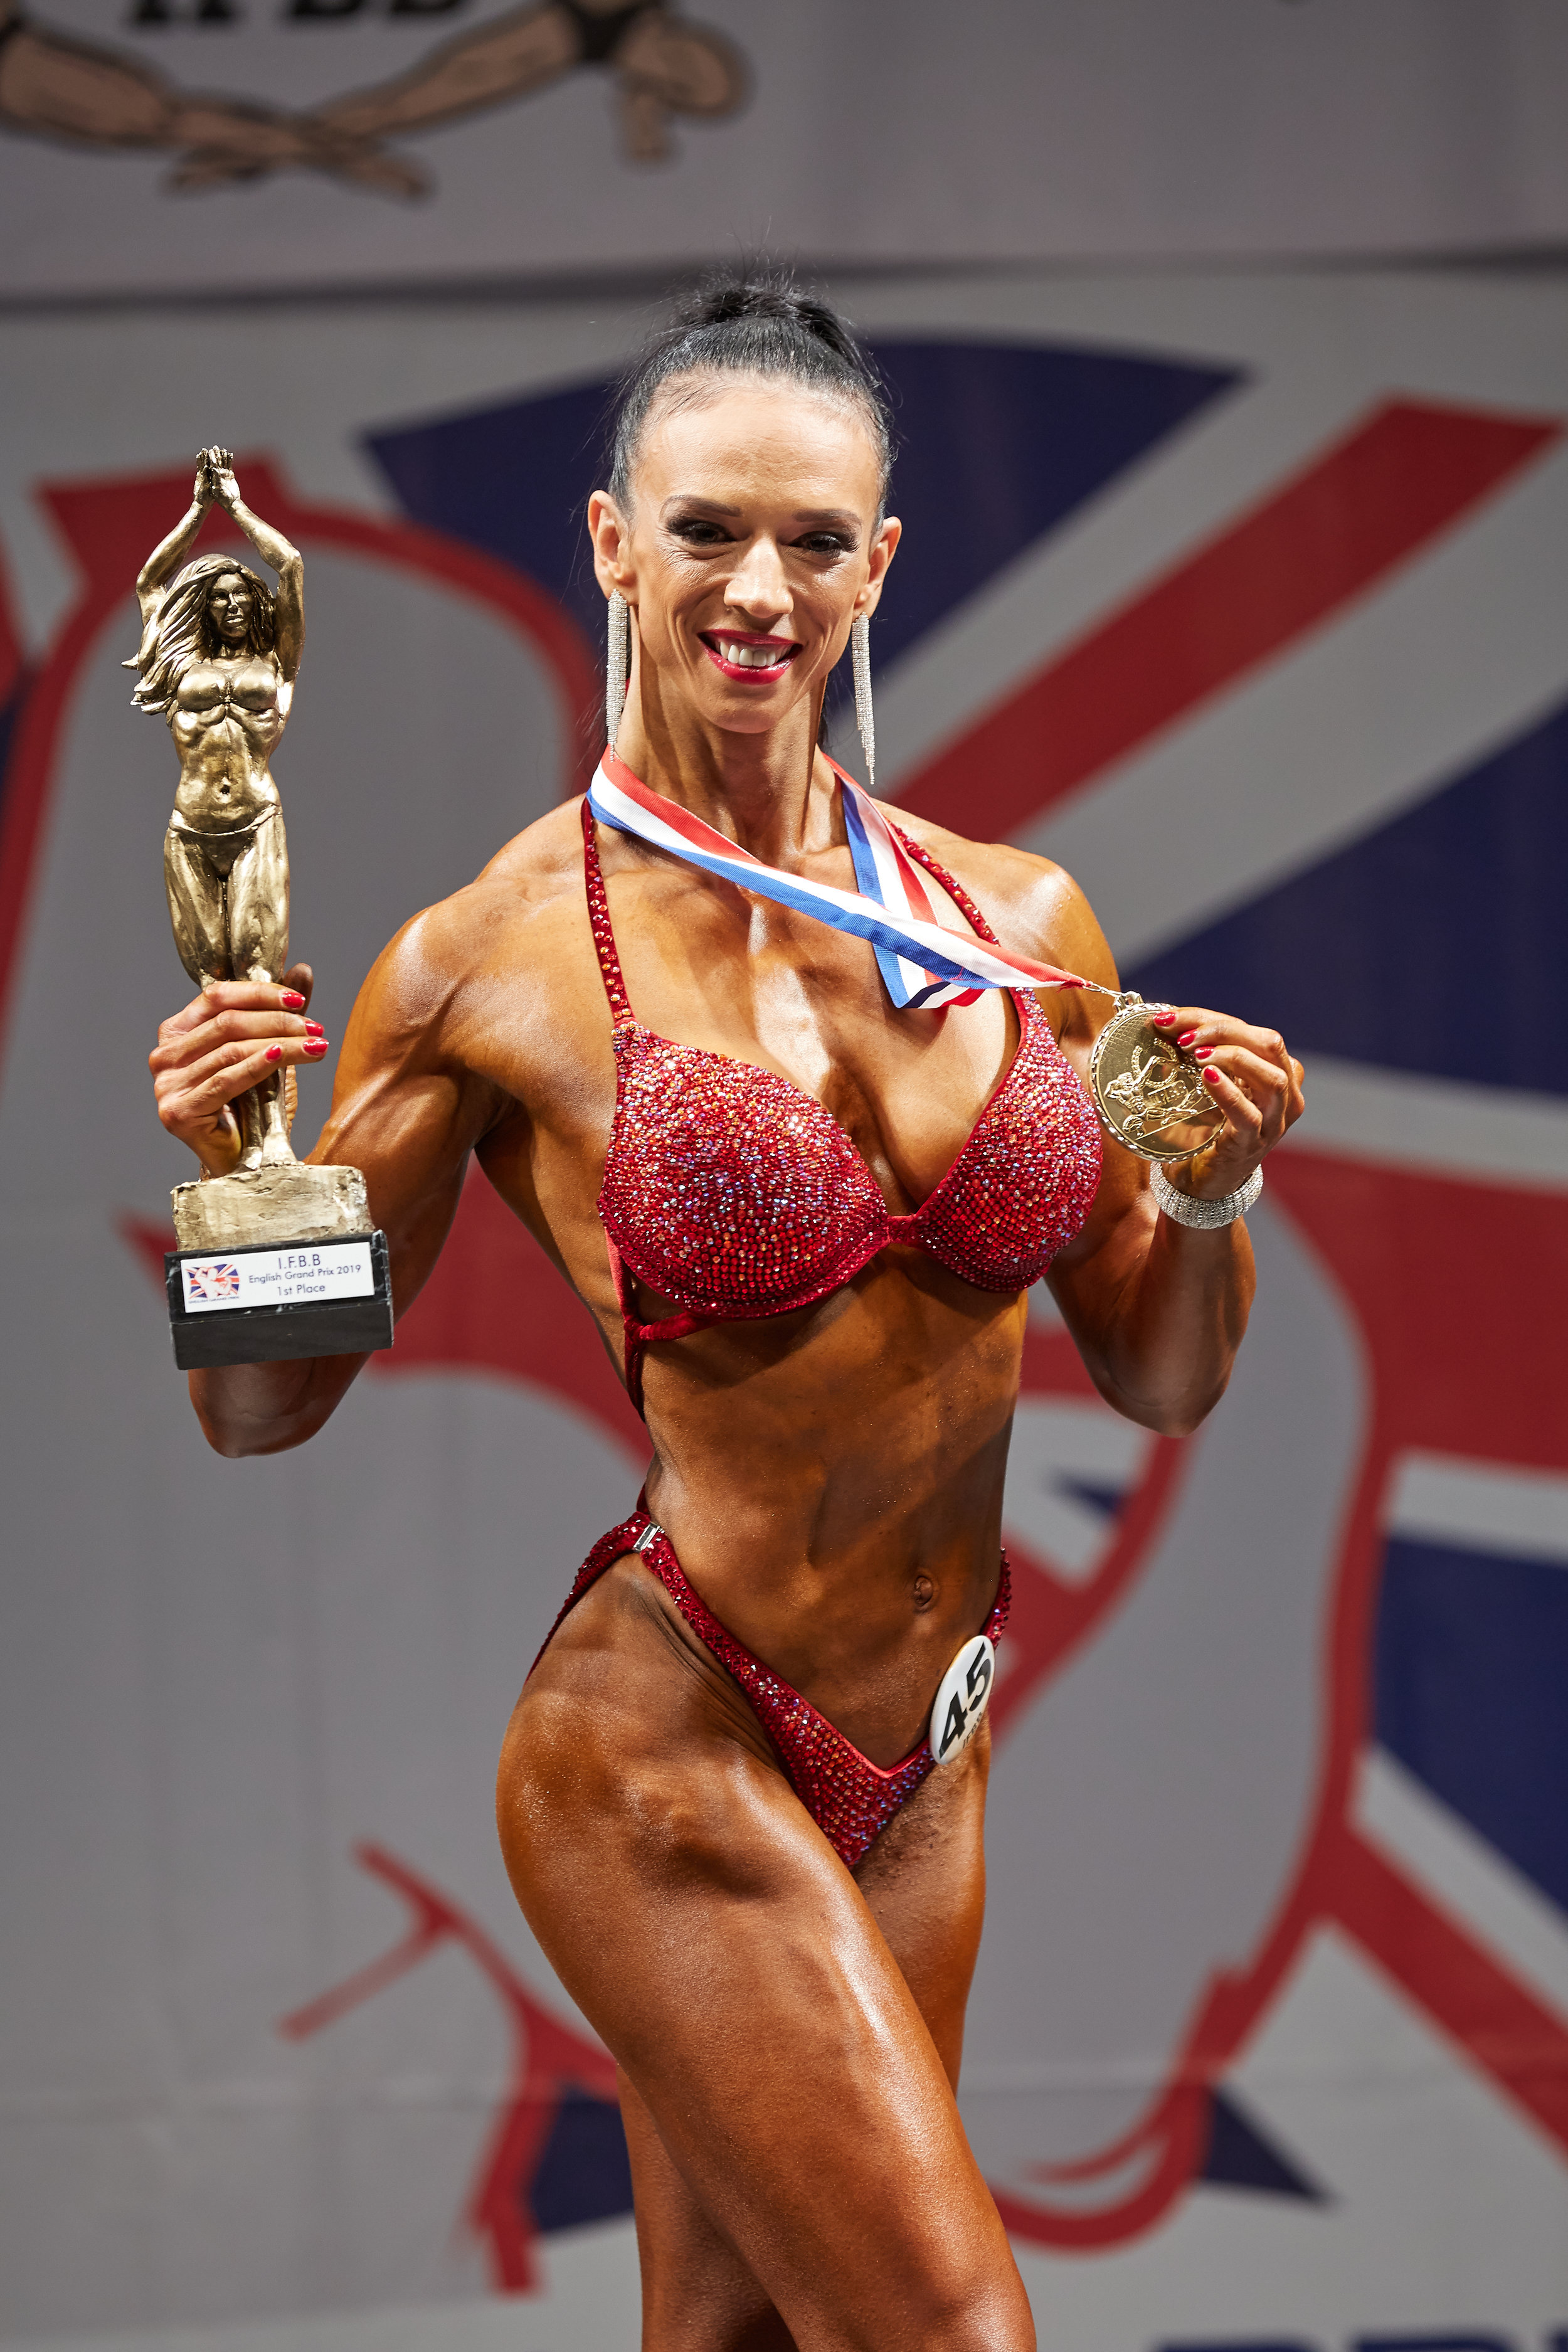 Olga has been on fire this year, winning trophy after trophy.